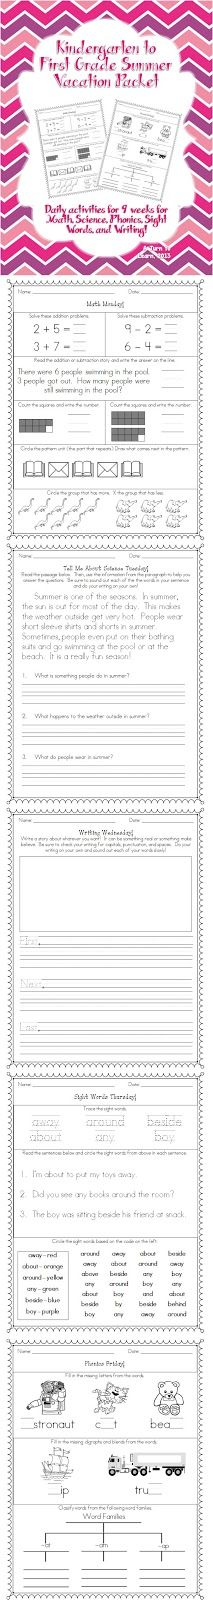 Summer Daily Worksheets for Kindergarten Students Entering First Grade!      Perfect to mail home to your incoming class!